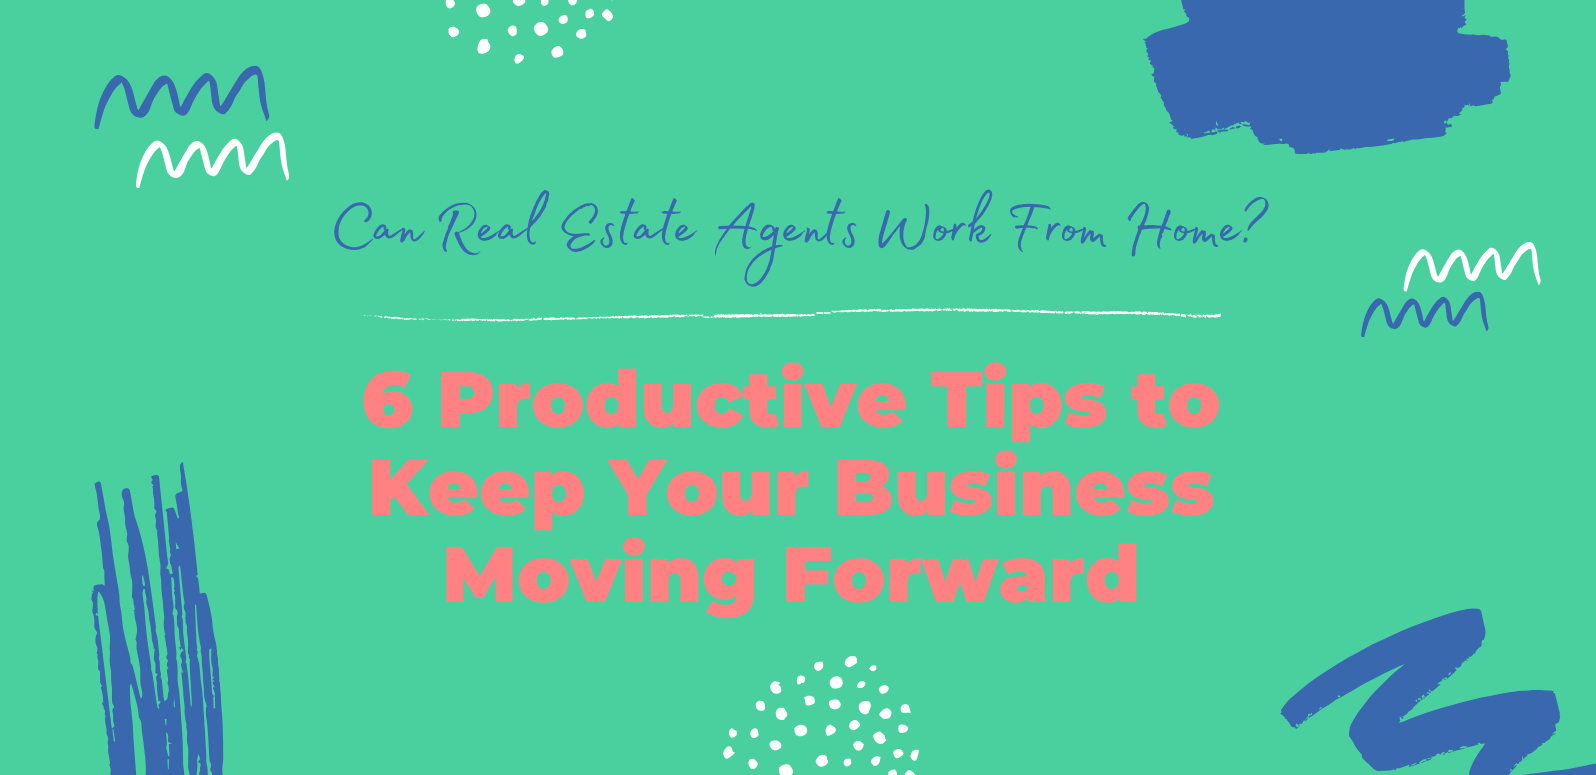 Can Real Estate Agents Work From Home? 6 Productive Tips to Keep Your Business Moving Forward